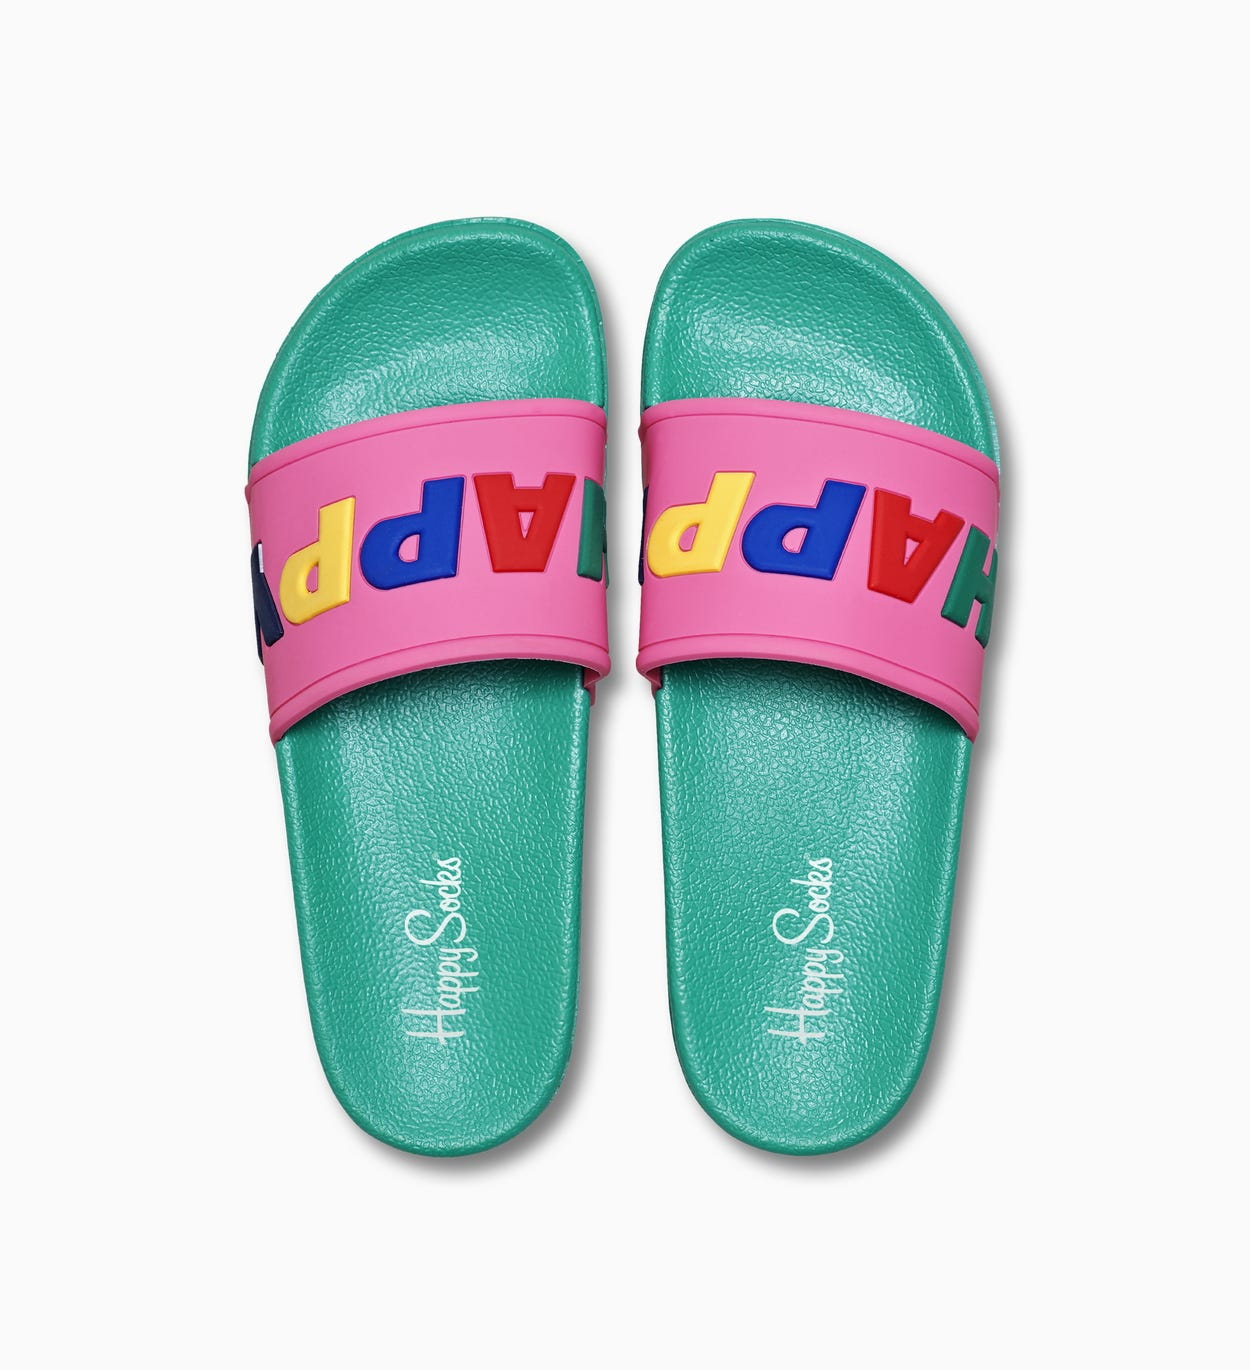 Colorful Pool Sliders, Sandals: Pool | Happy Socks